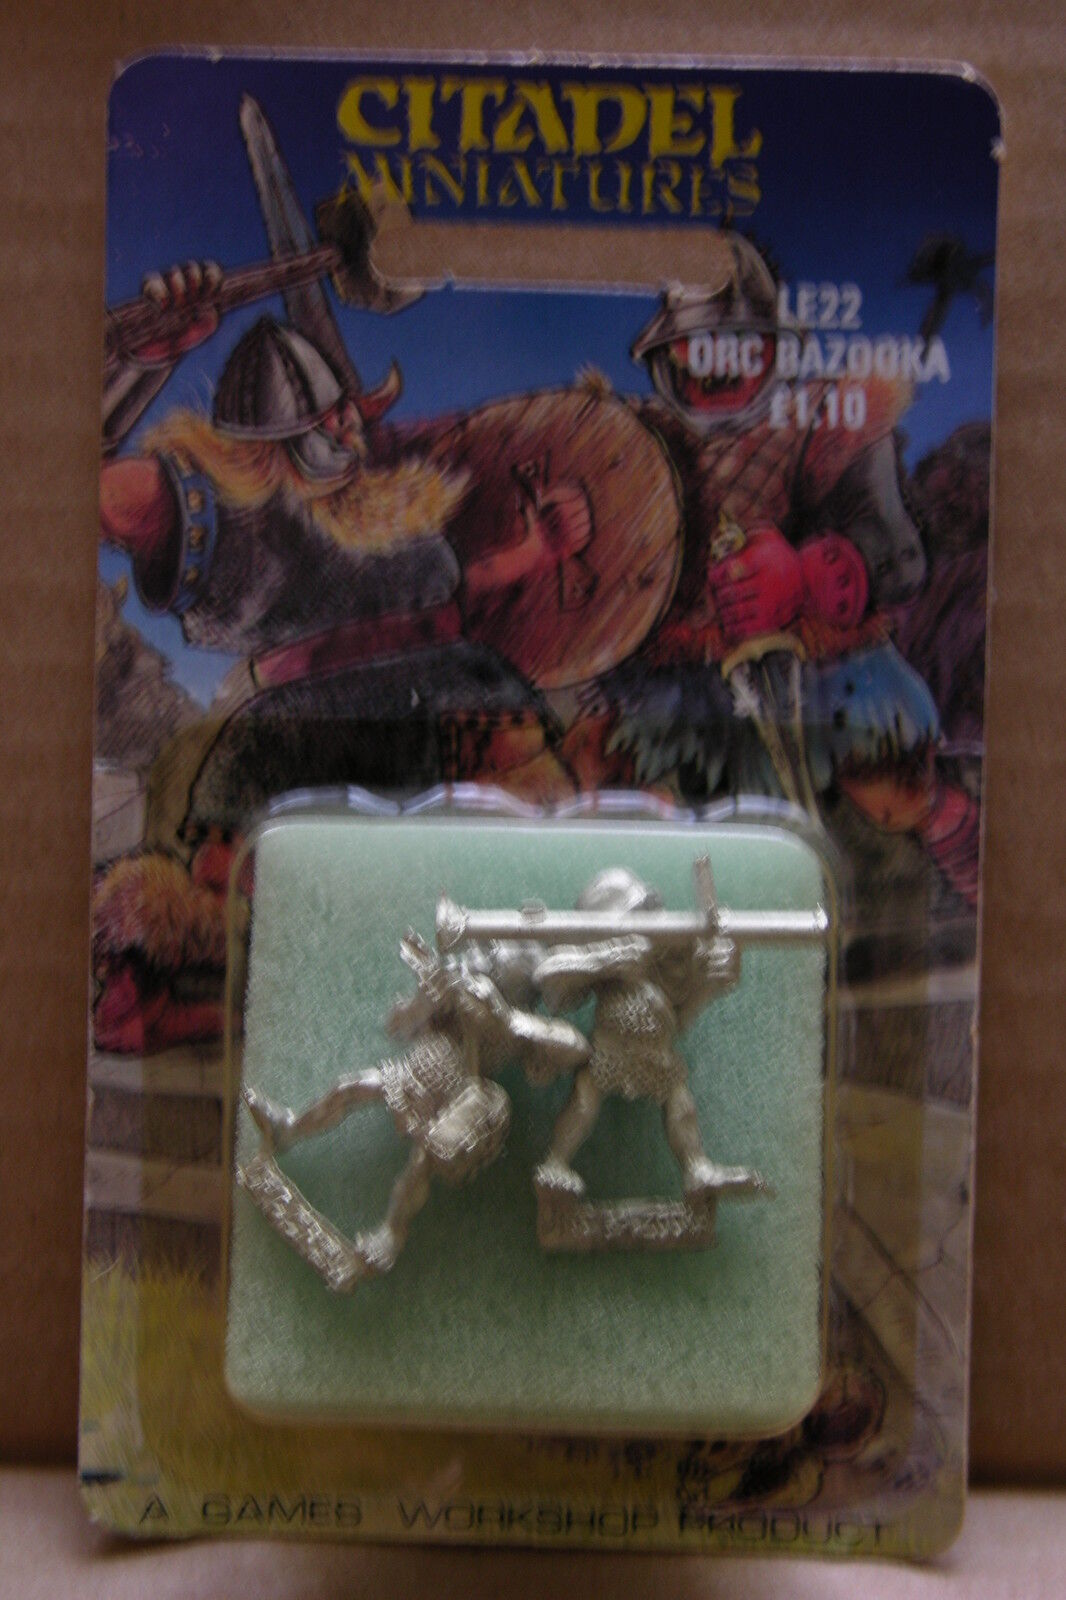 CITADEL LIMITED EDITION RELEASE   LE22,ORC BAZOOKA TEAM,BLISTER UNOPENED